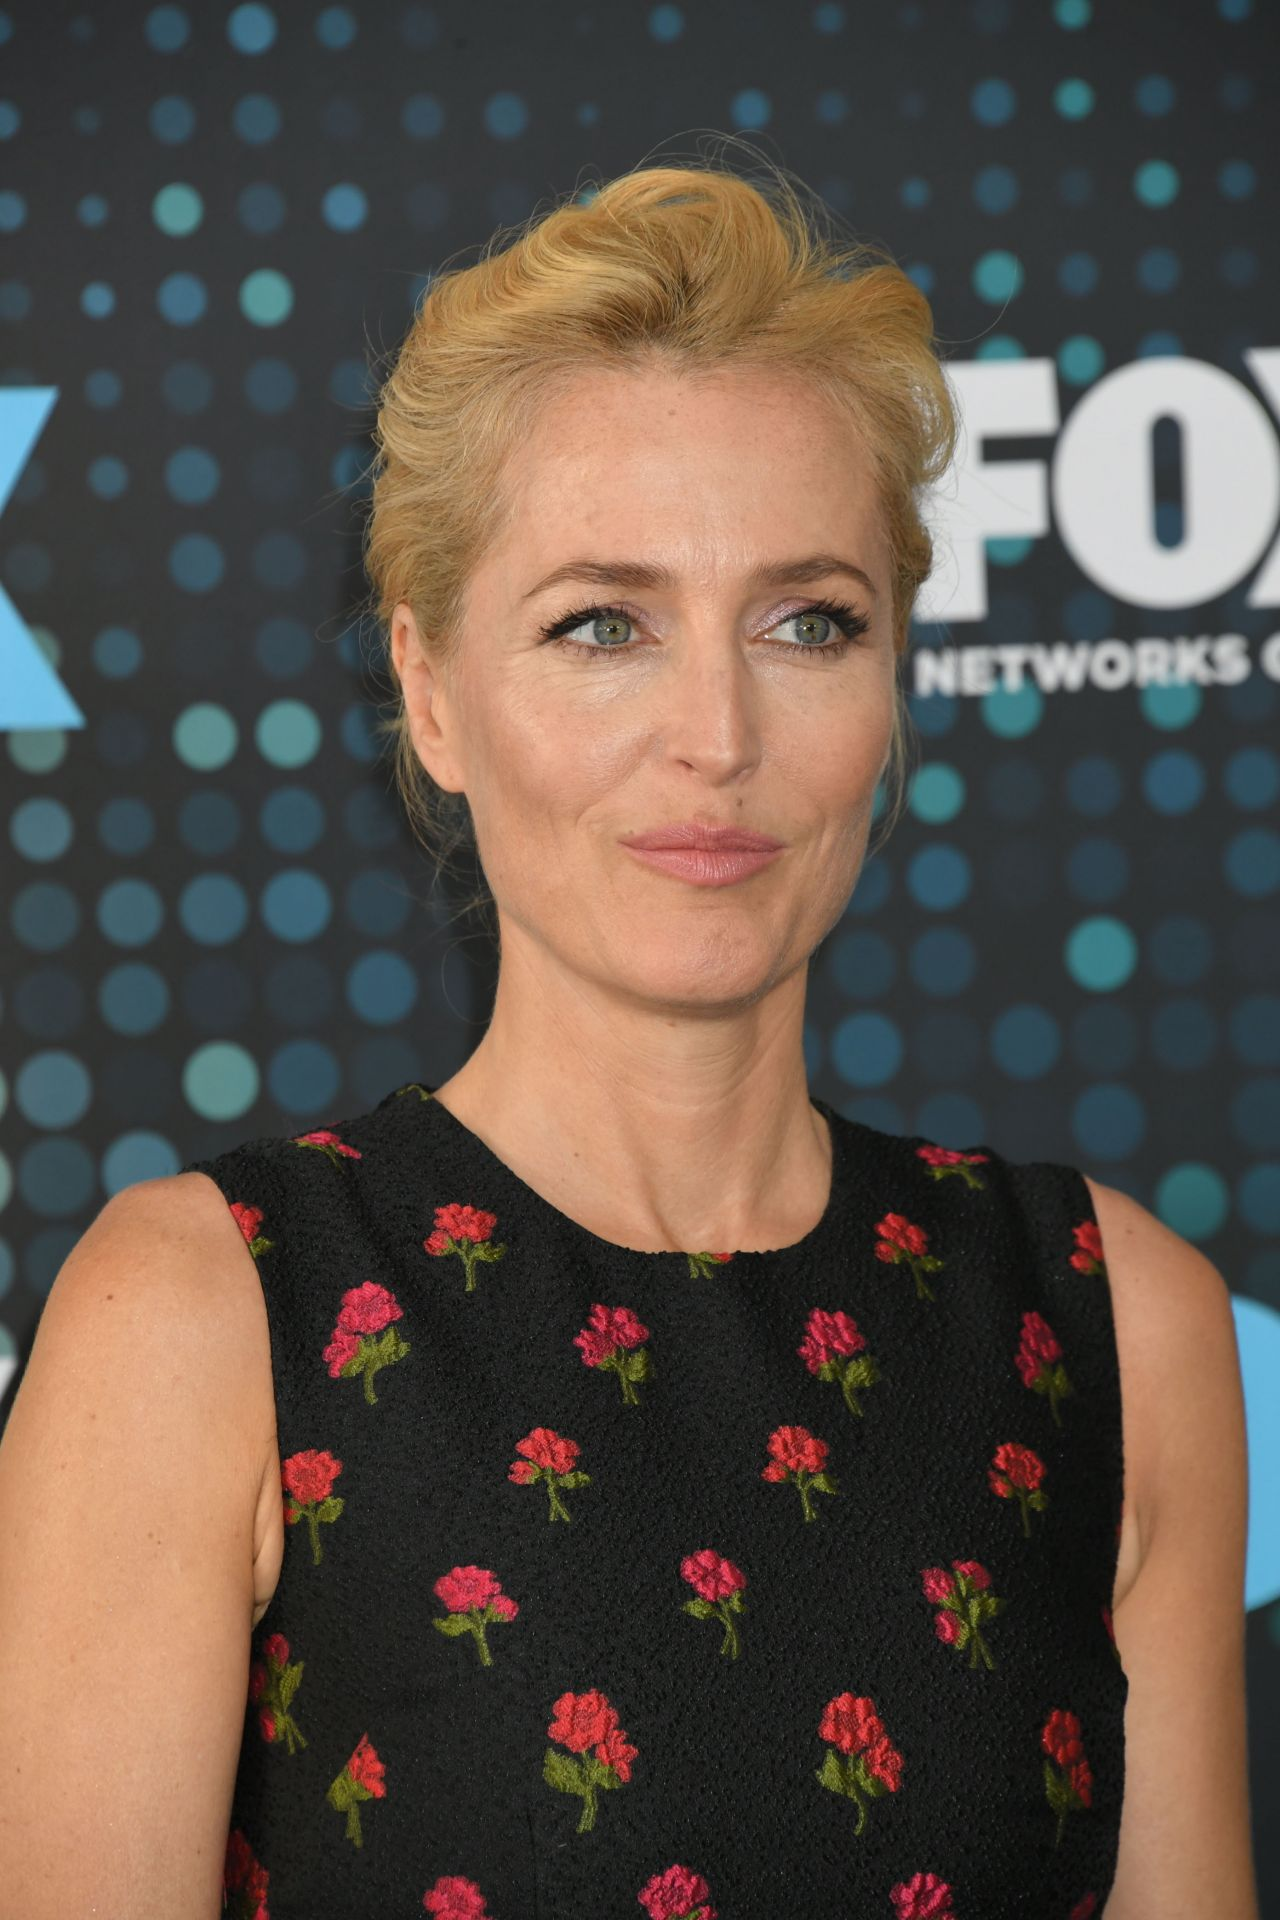 Gillian Anderson Fox Upfront Presentation In Nyc 05 15 2017